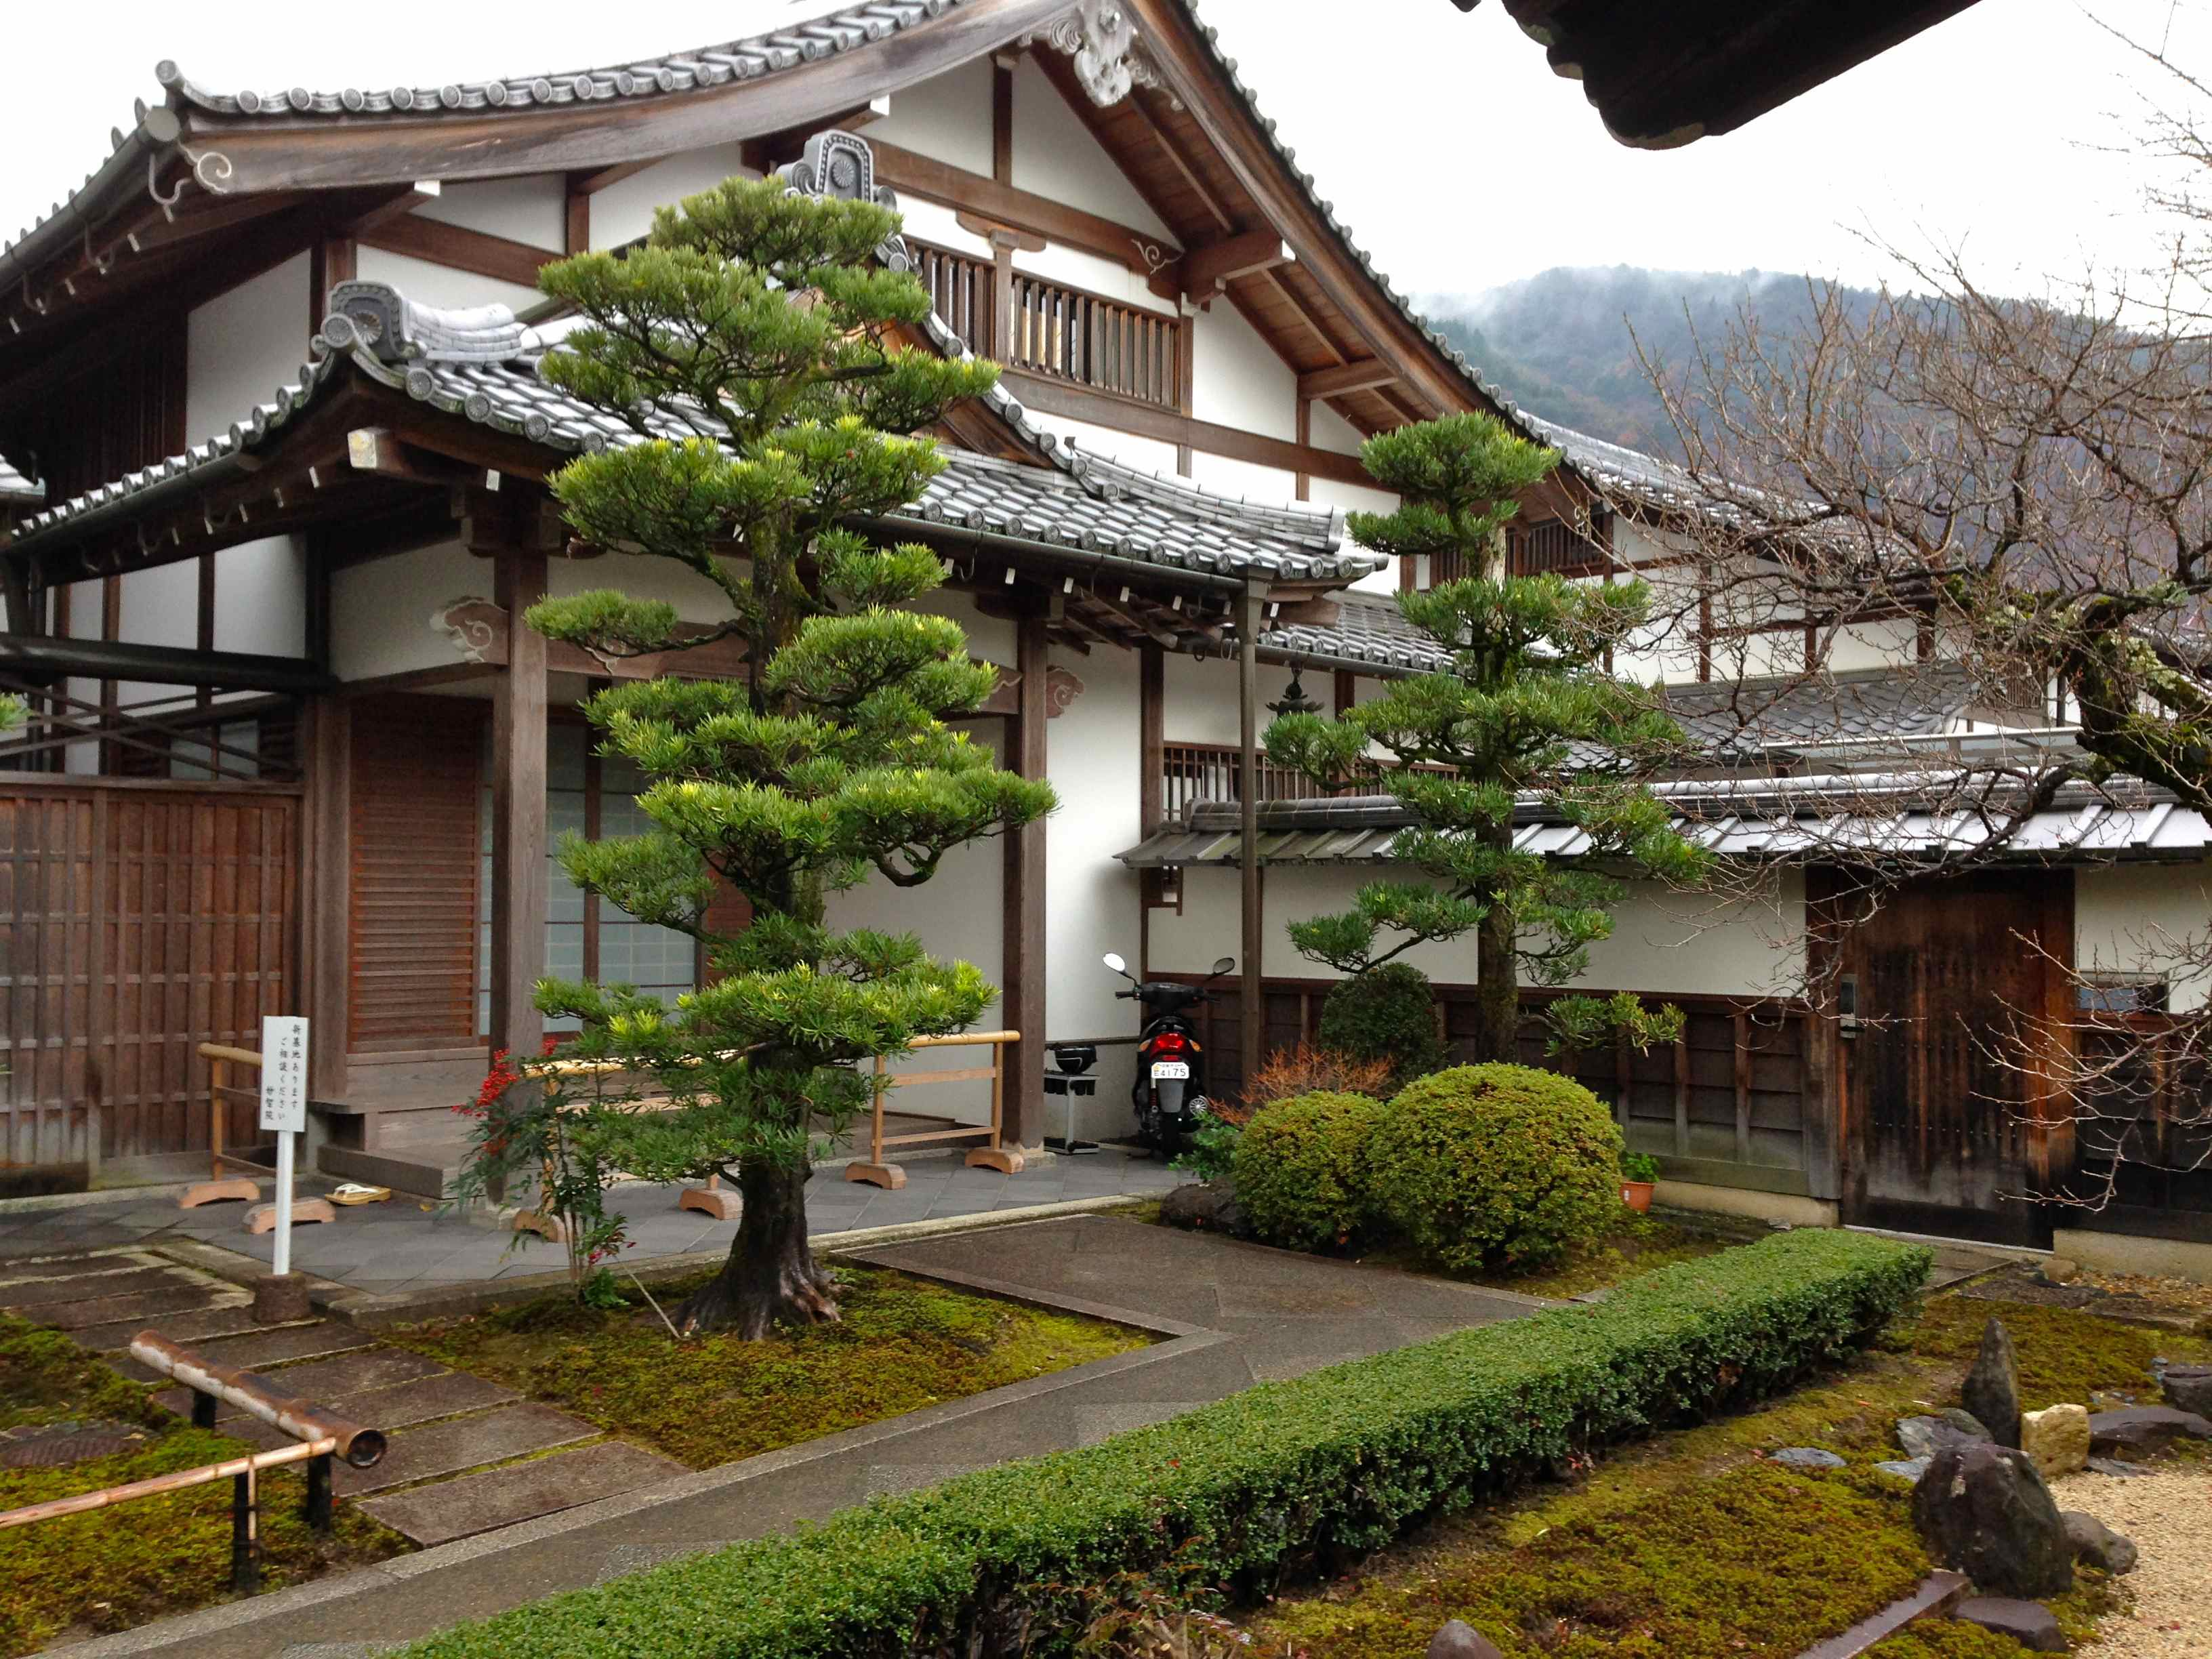 Traditional Japanese Building Inside A Garden In Arashiyama